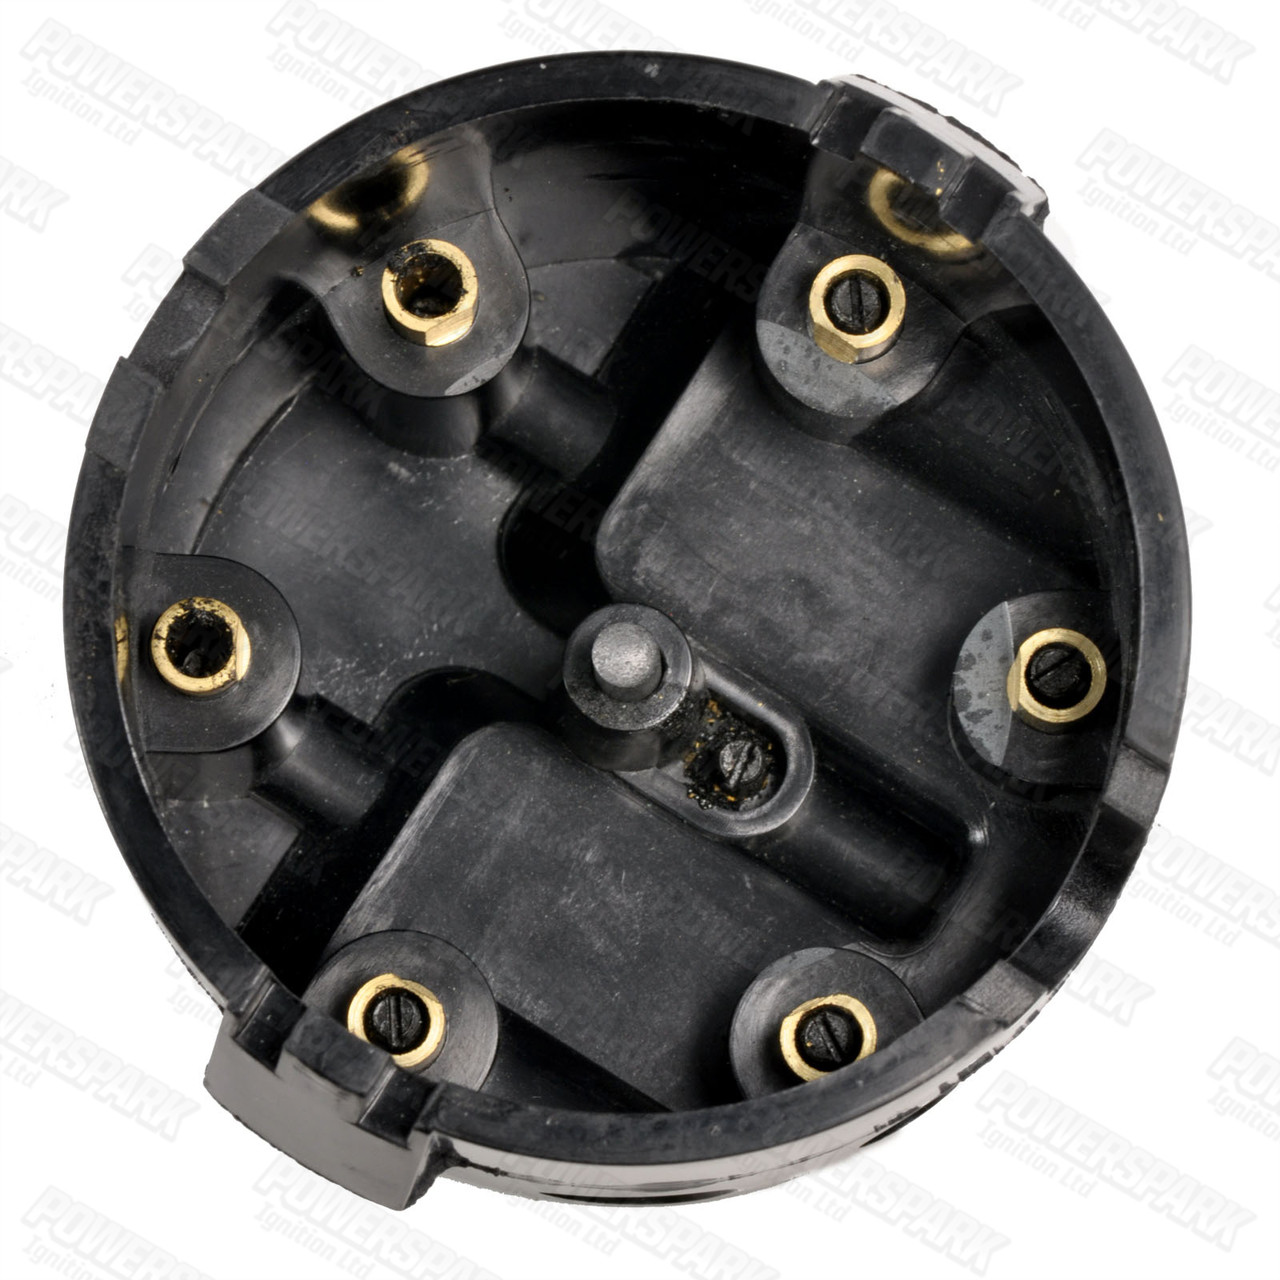 Lucas 22D6 & 25D6 Distributor Cap Side Entry DDB116 (Genuine Lucas) (DDB116)